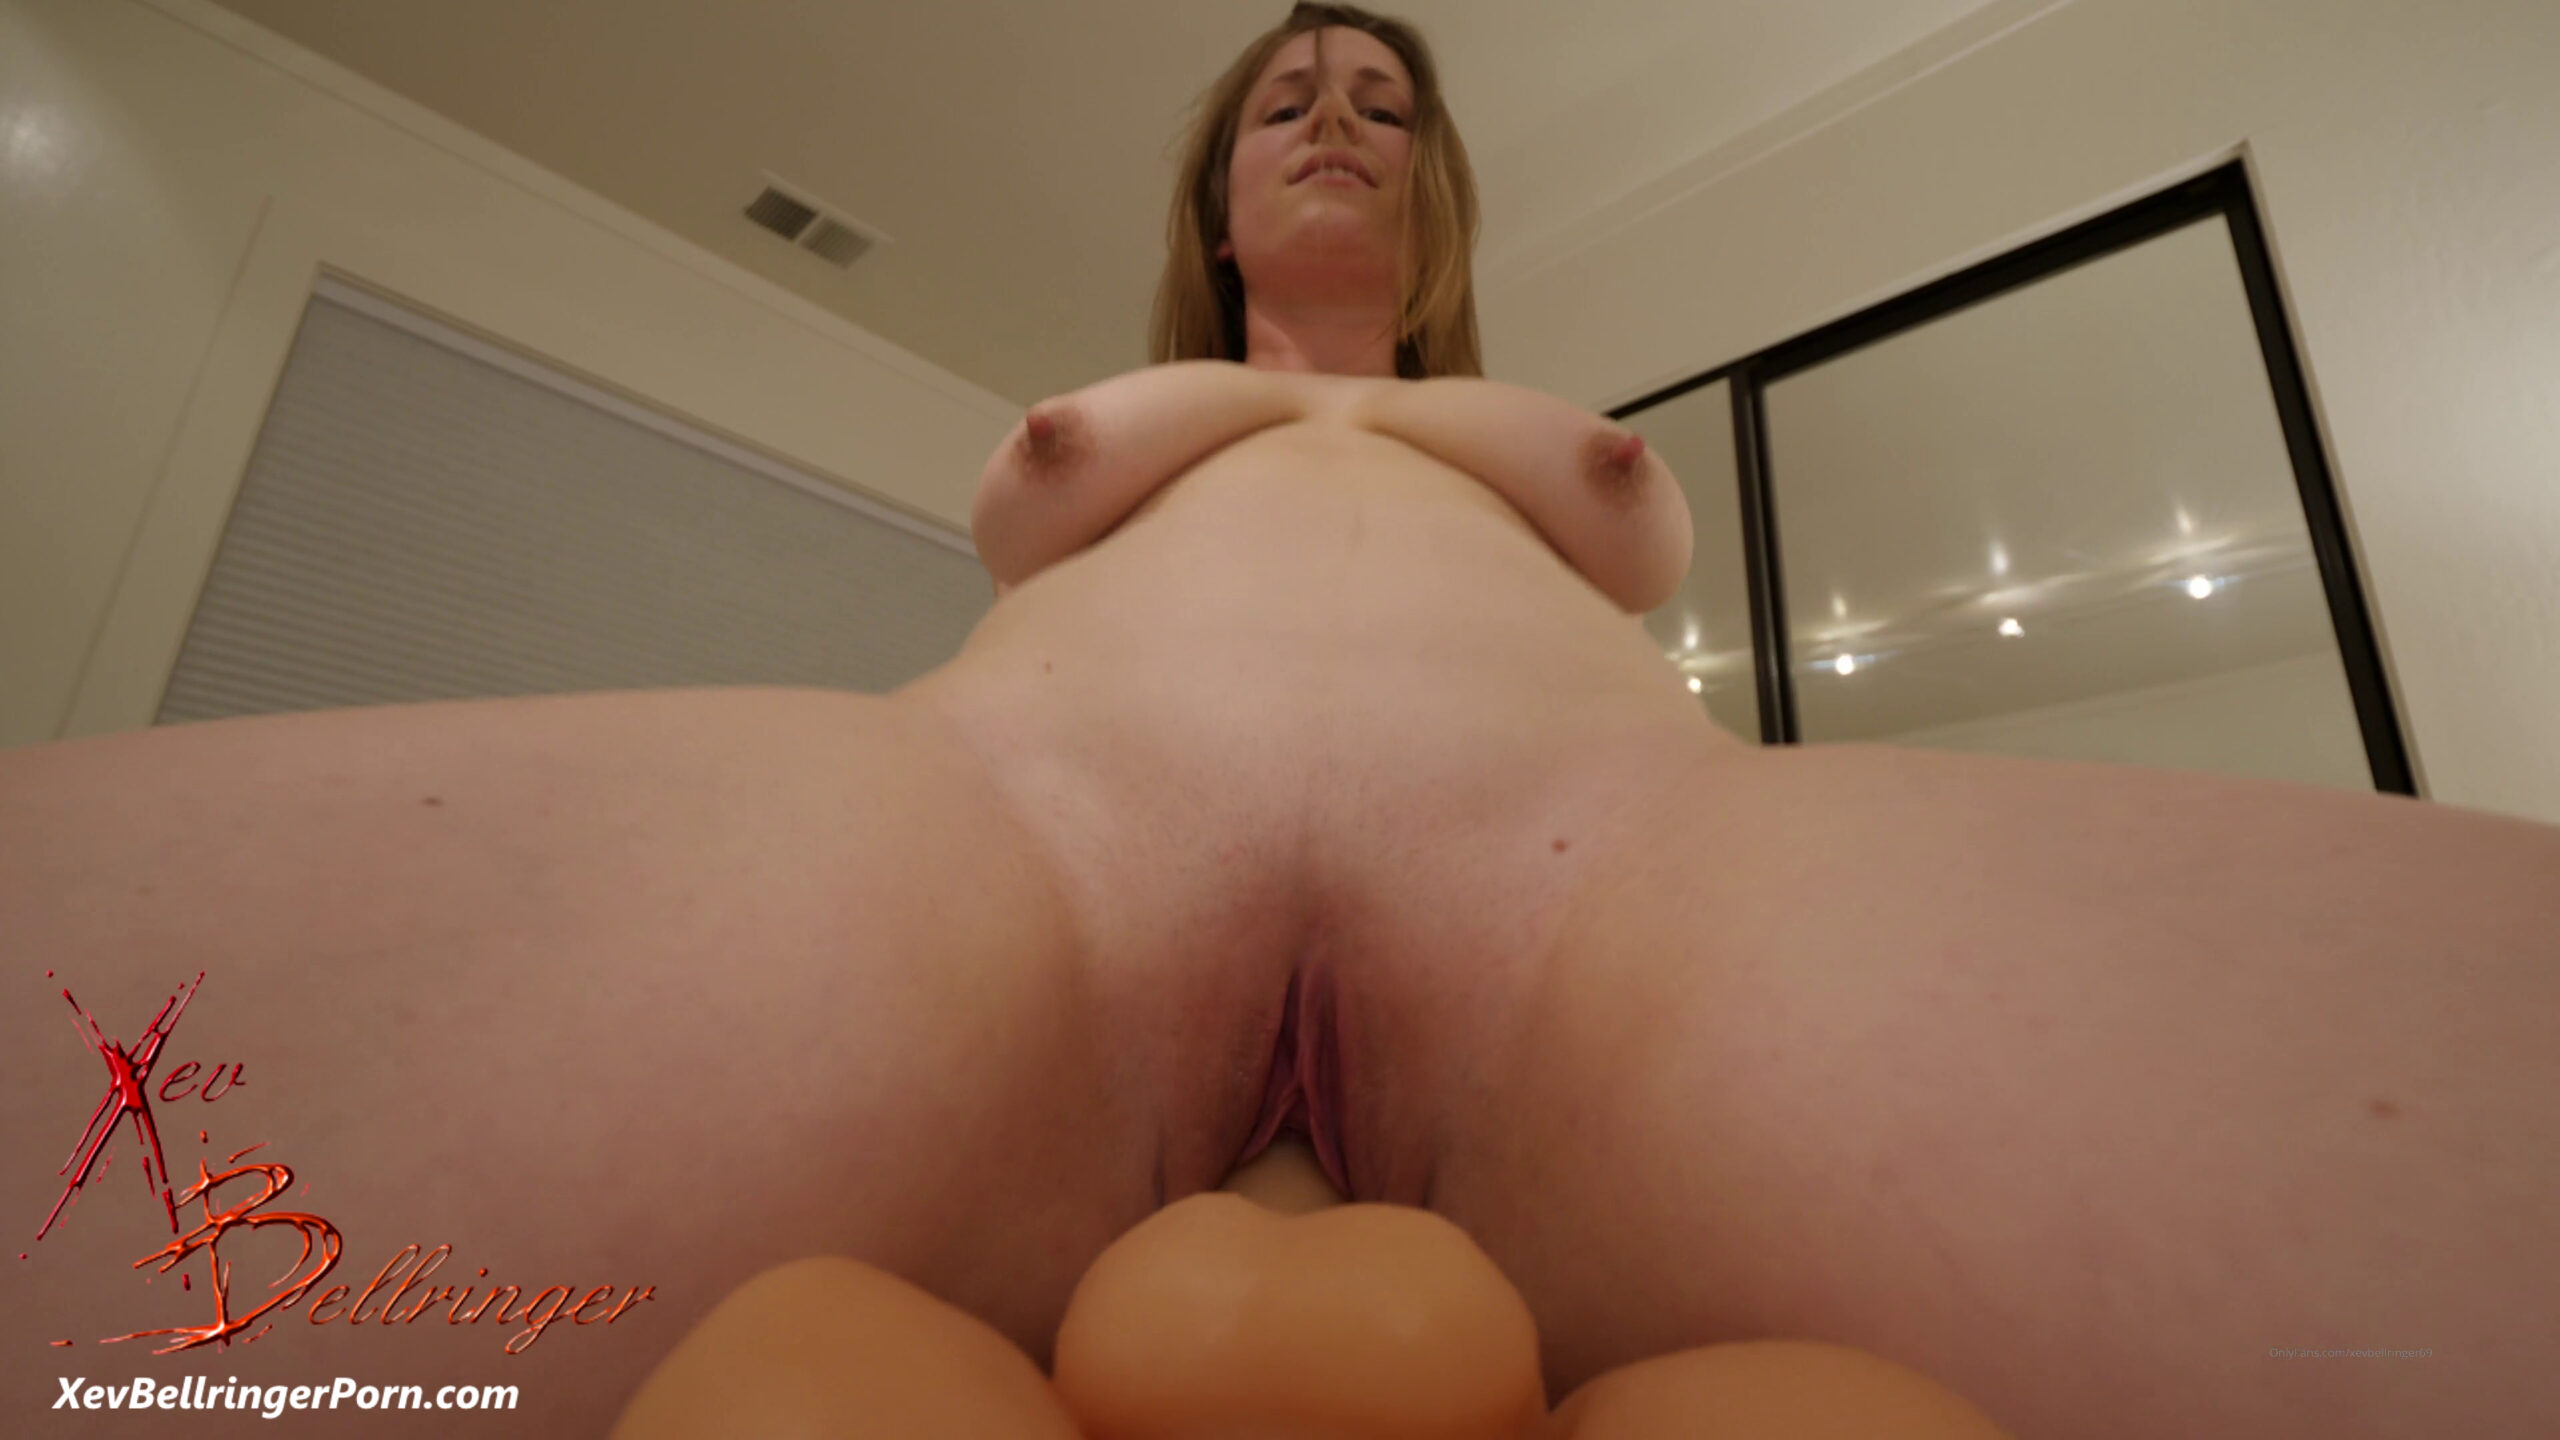 Xev Bellringer ManyVids Nude Great Riding Video